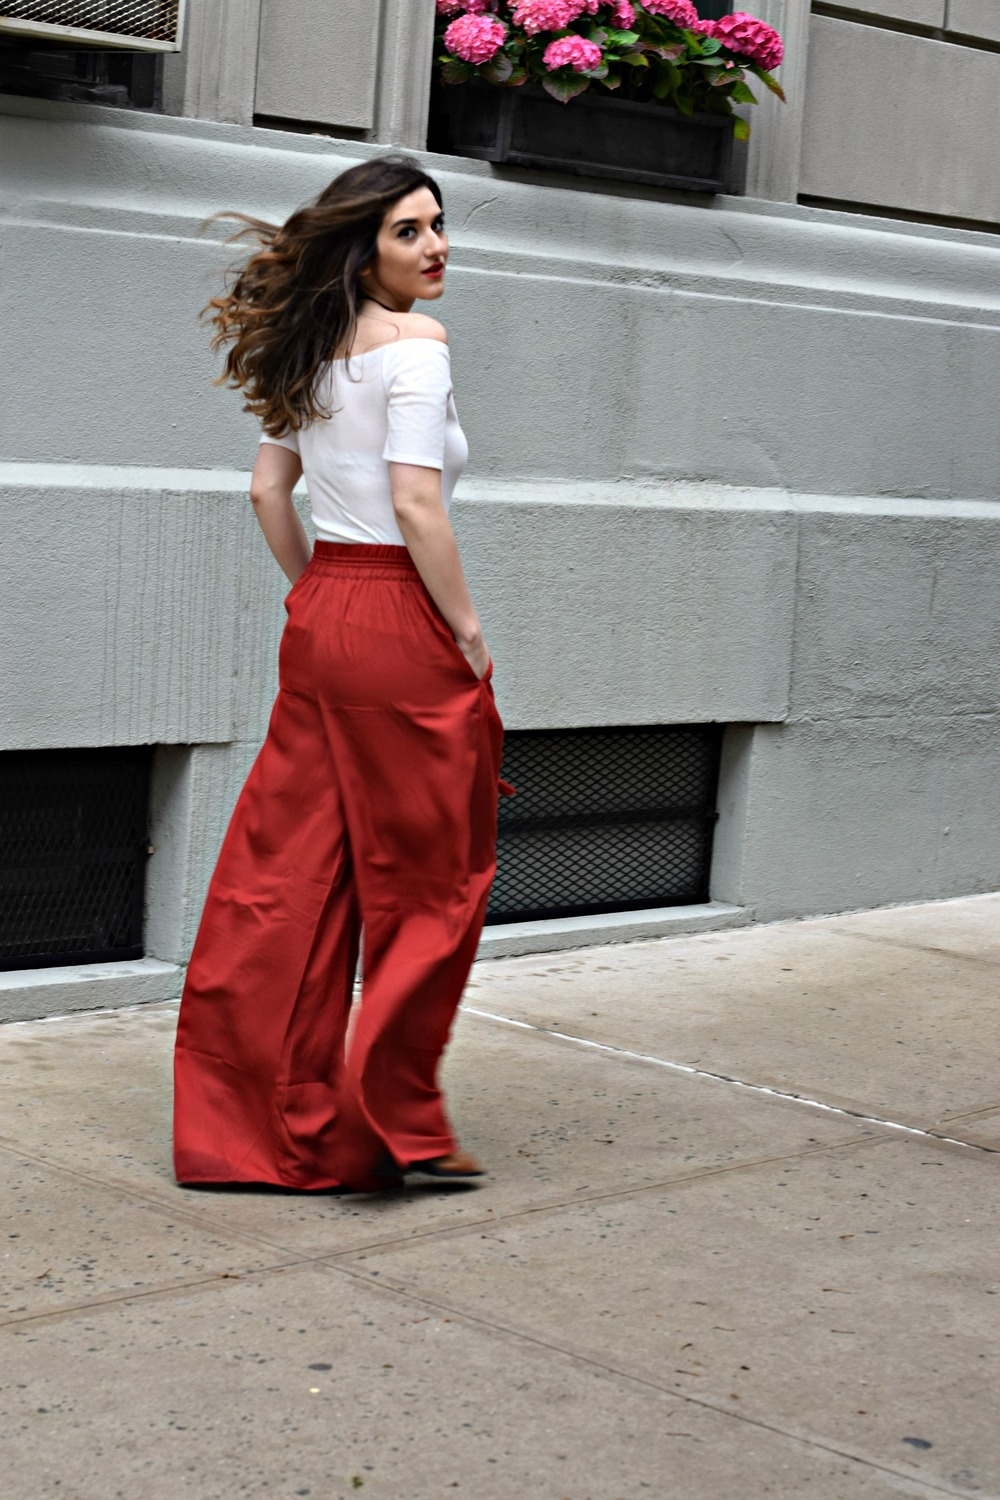 New Haircut Red Palazzo Pants Louboutins & Love Fashion Blog Esther Santer NYC Street Style Blogger Outfit OOTD Colorful Choker ELAHN Jewels Jewelry Cold Shoulder White Top Girl Women Pretty Shop New York City Model Inspo Hair Summer Spring Photoshoot.jpg